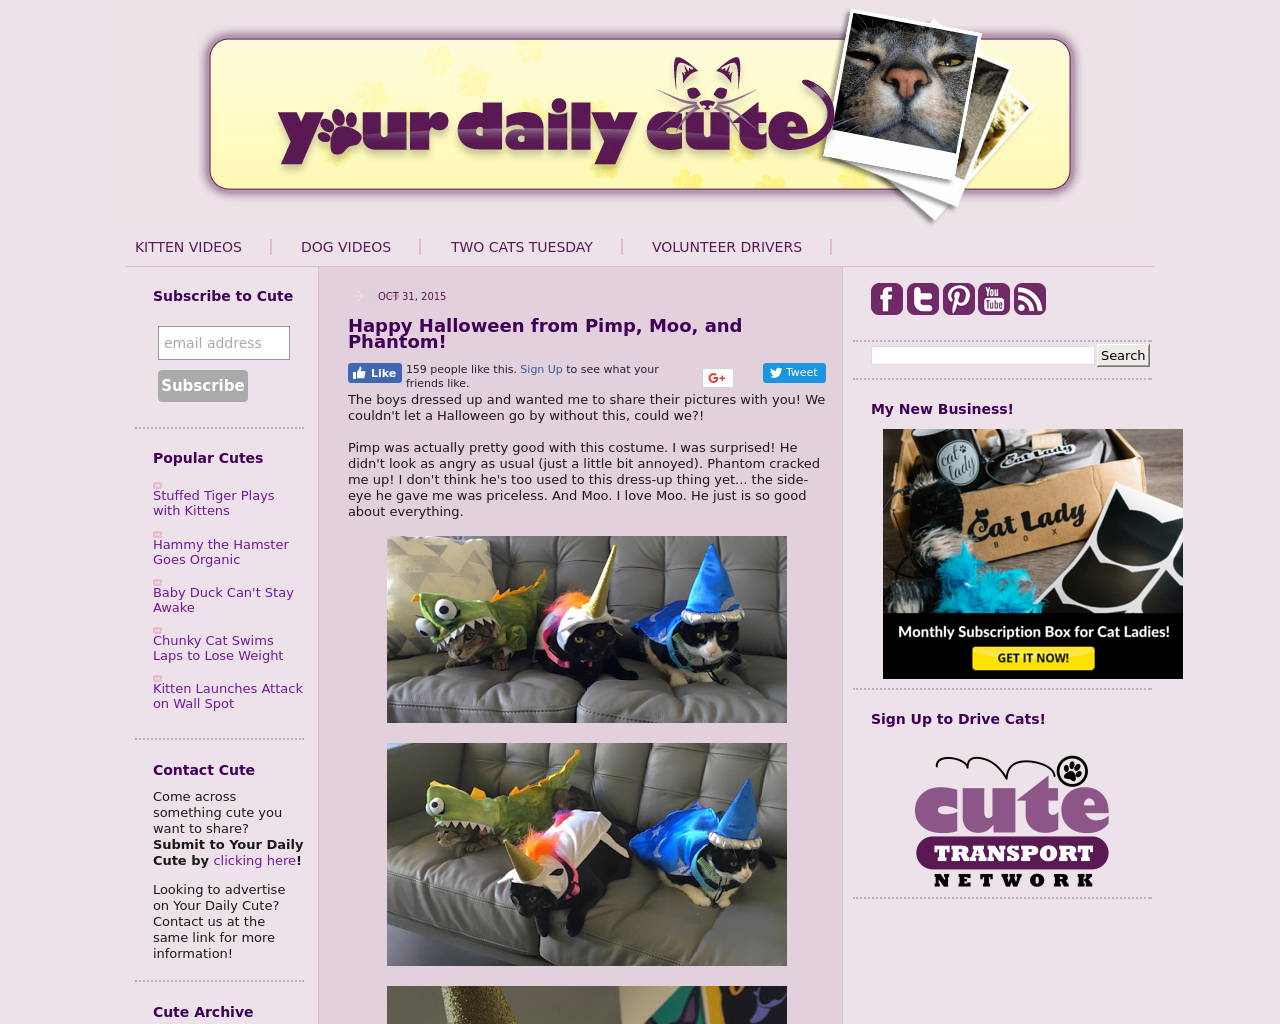 Your-Daily-Cute-Advertising-Reviews-Pricing